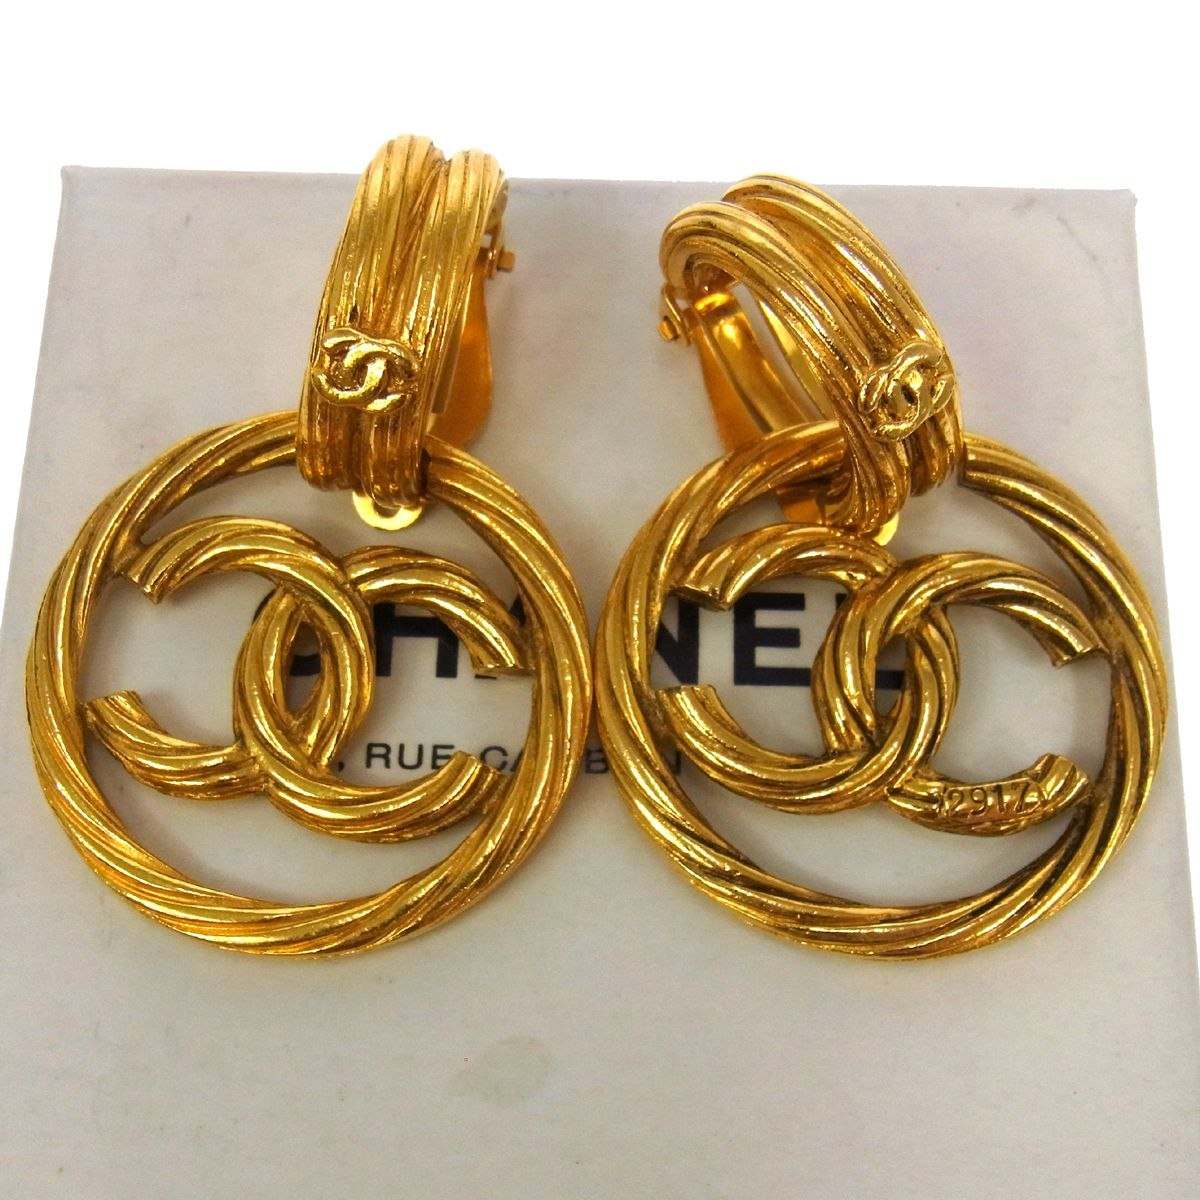 authentic vintage chanel gold cc earrings truc de chic